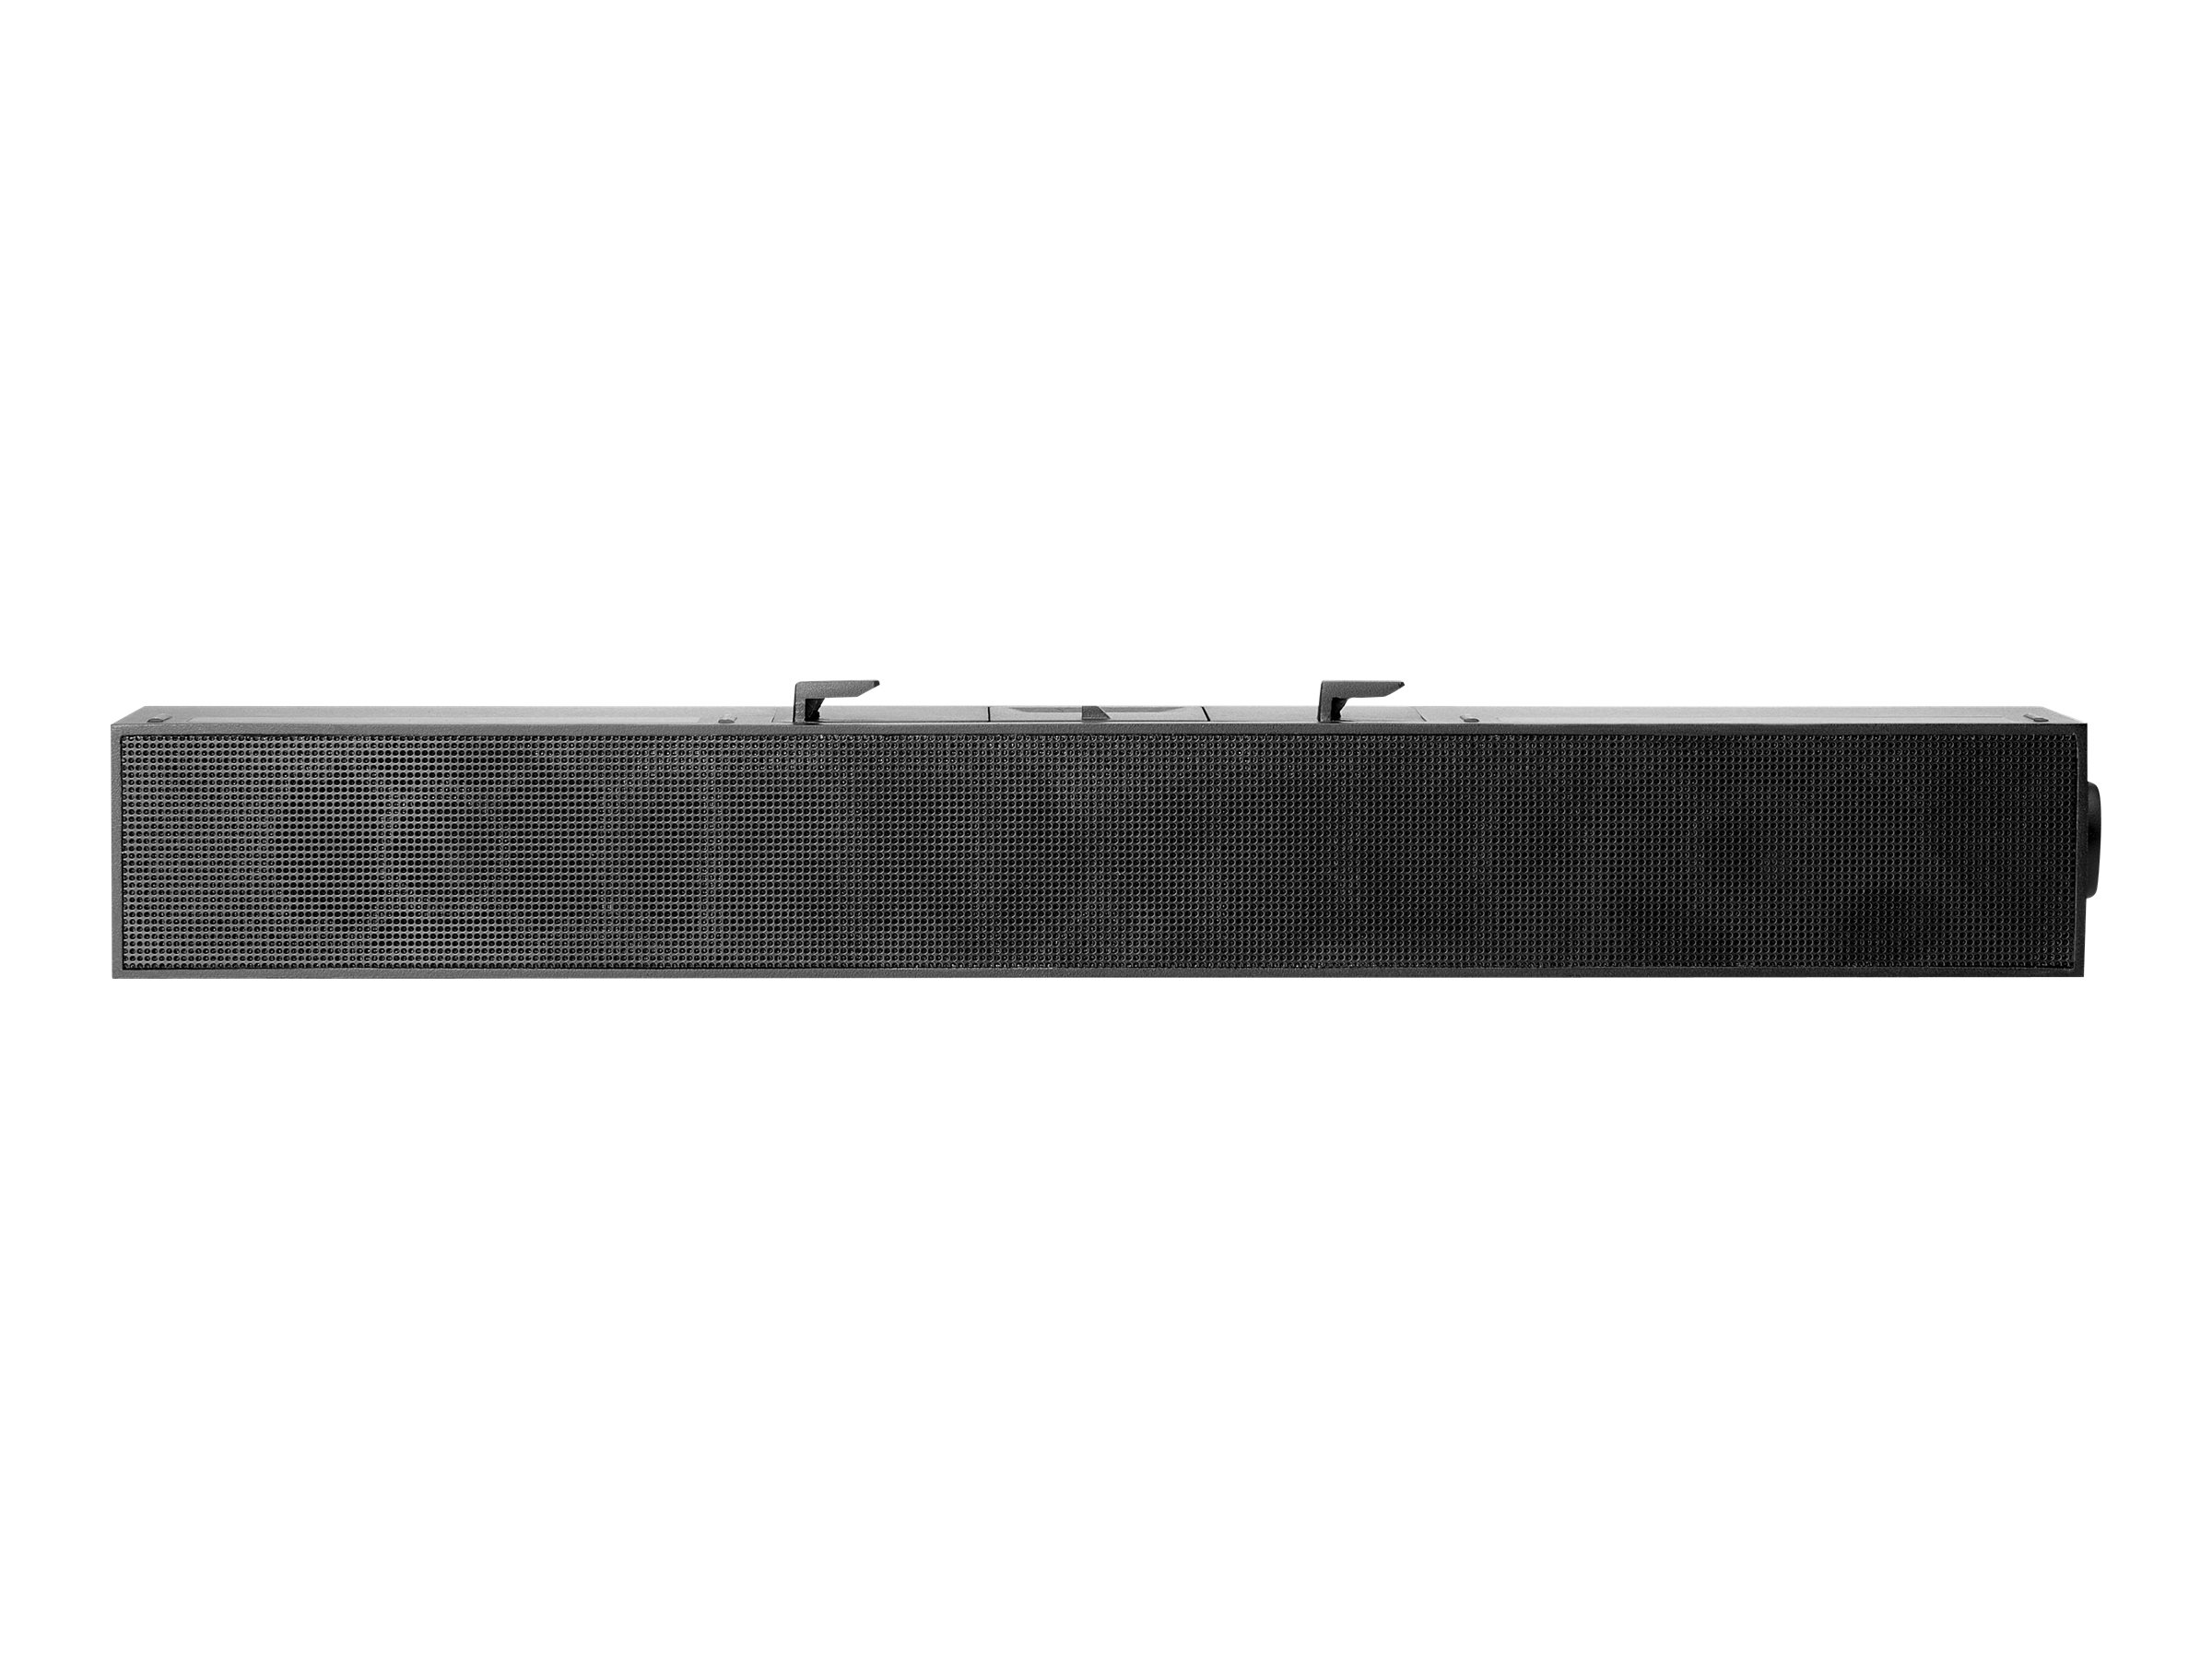 HP S101 - sound bar - for monitor